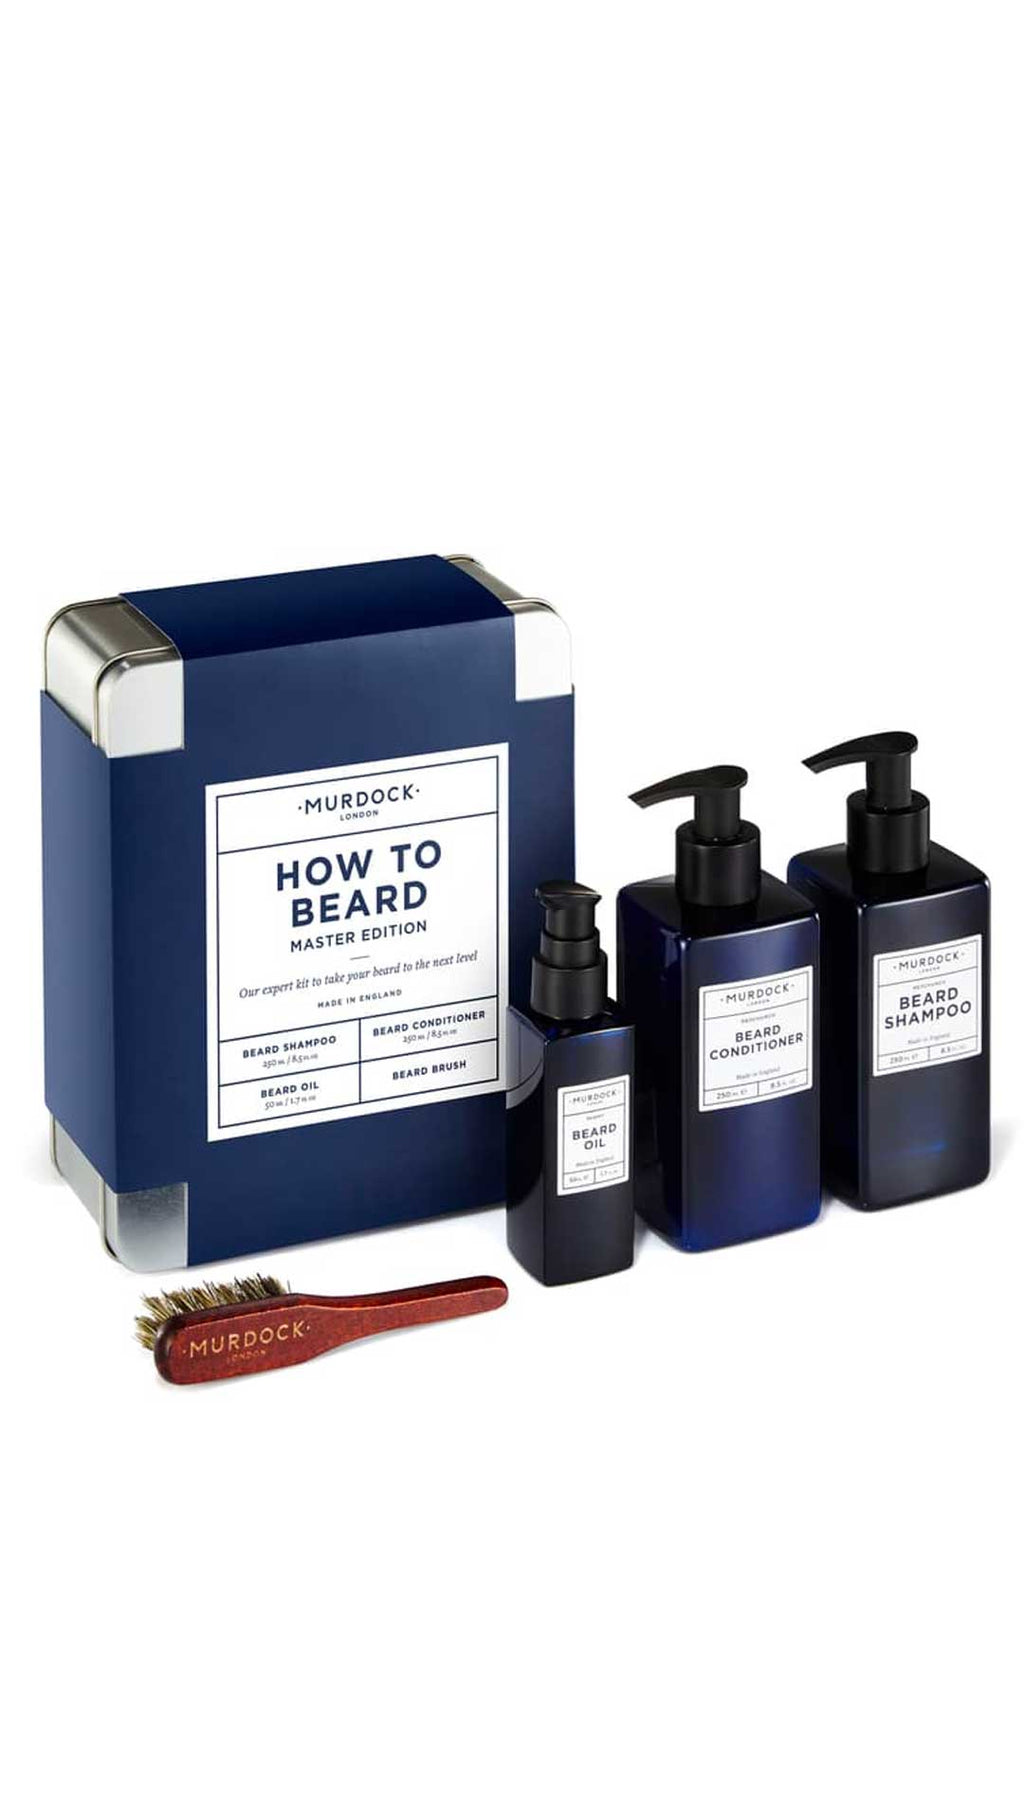 COFFRET HOW TO BEARD - MURDOCK OF LONDON